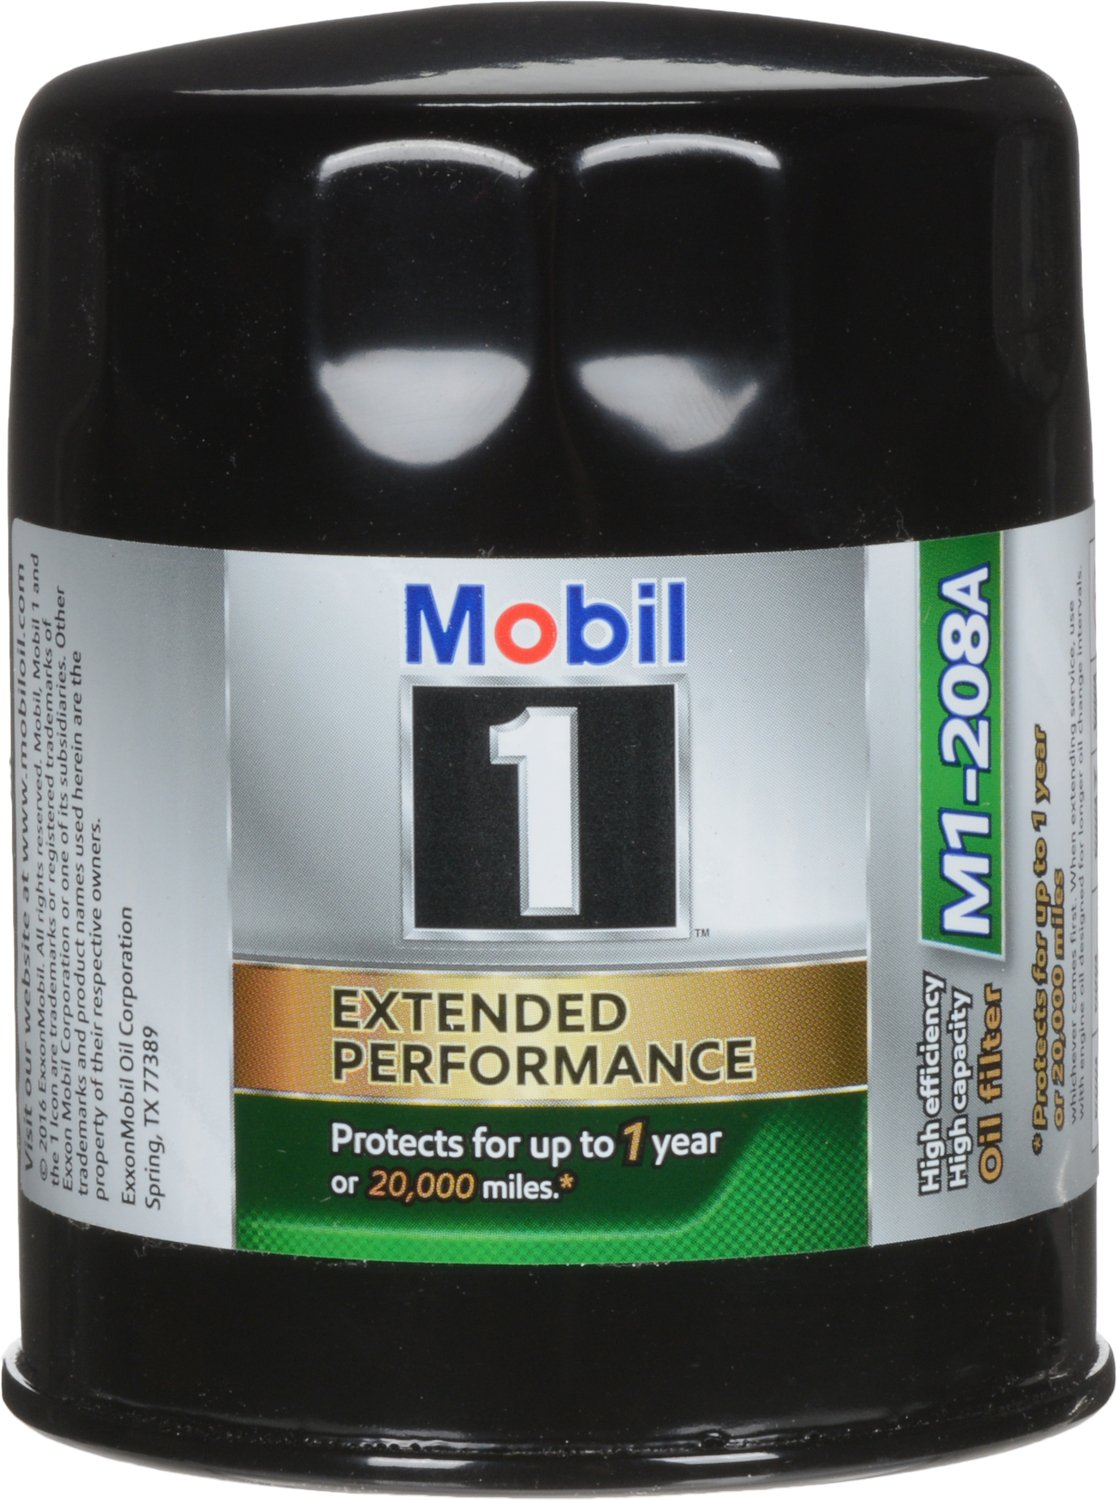 Mobil 1 M1-208A Extended Performance Oil Filter nobrandname